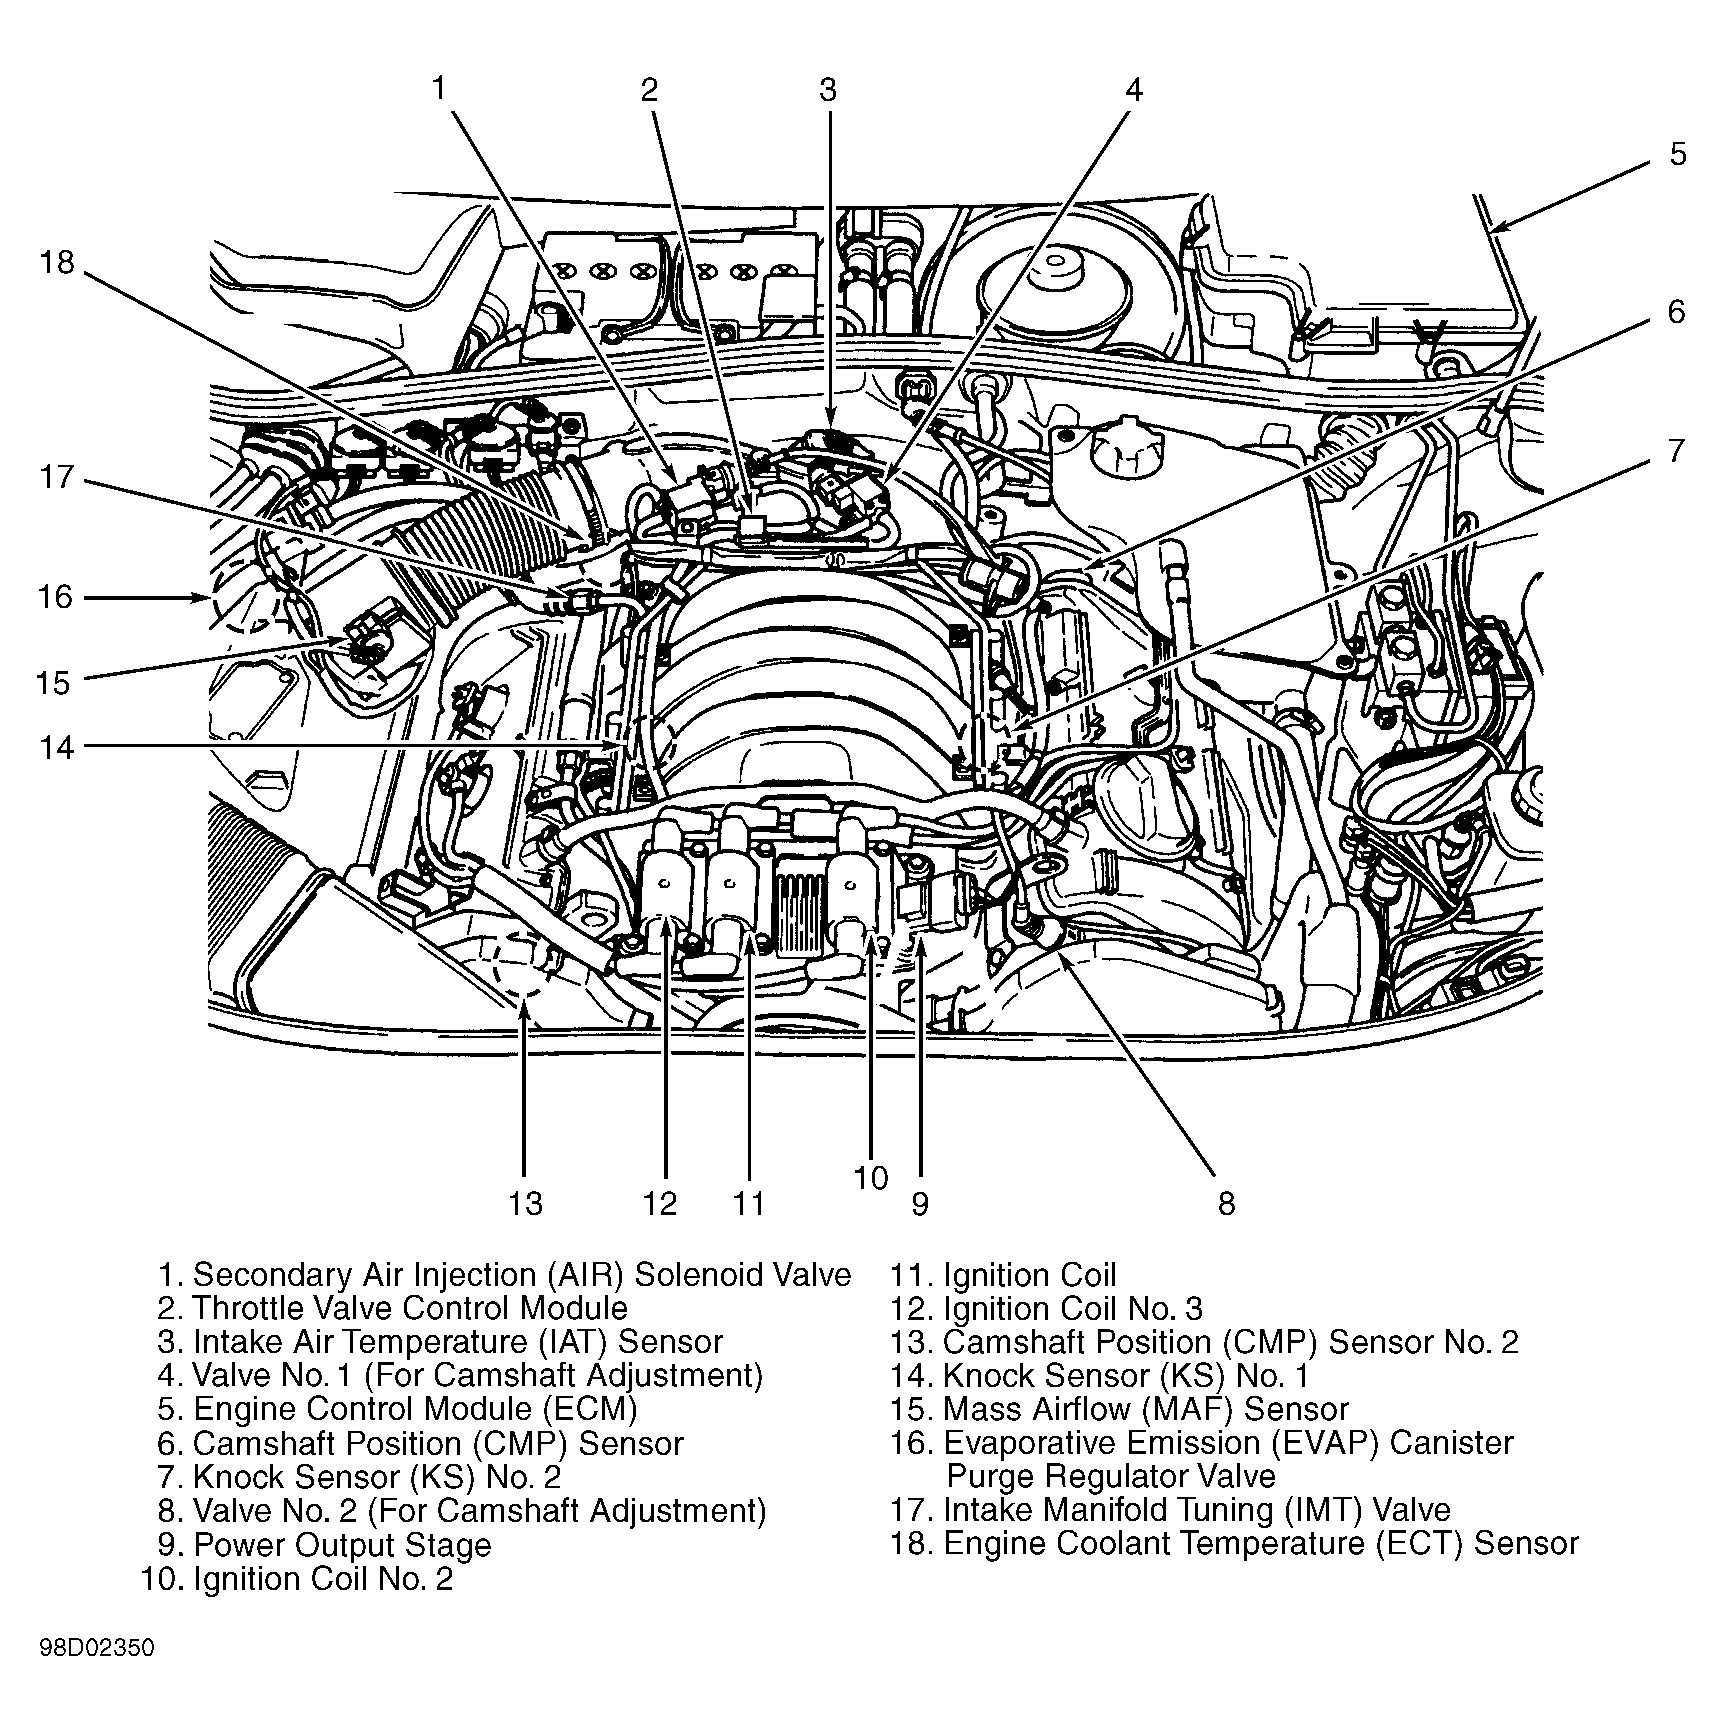 hight resolution of chrysler 2 7 engine diagram wiring diagram inside 1999 chrysler concorde 2 7 engine diagram